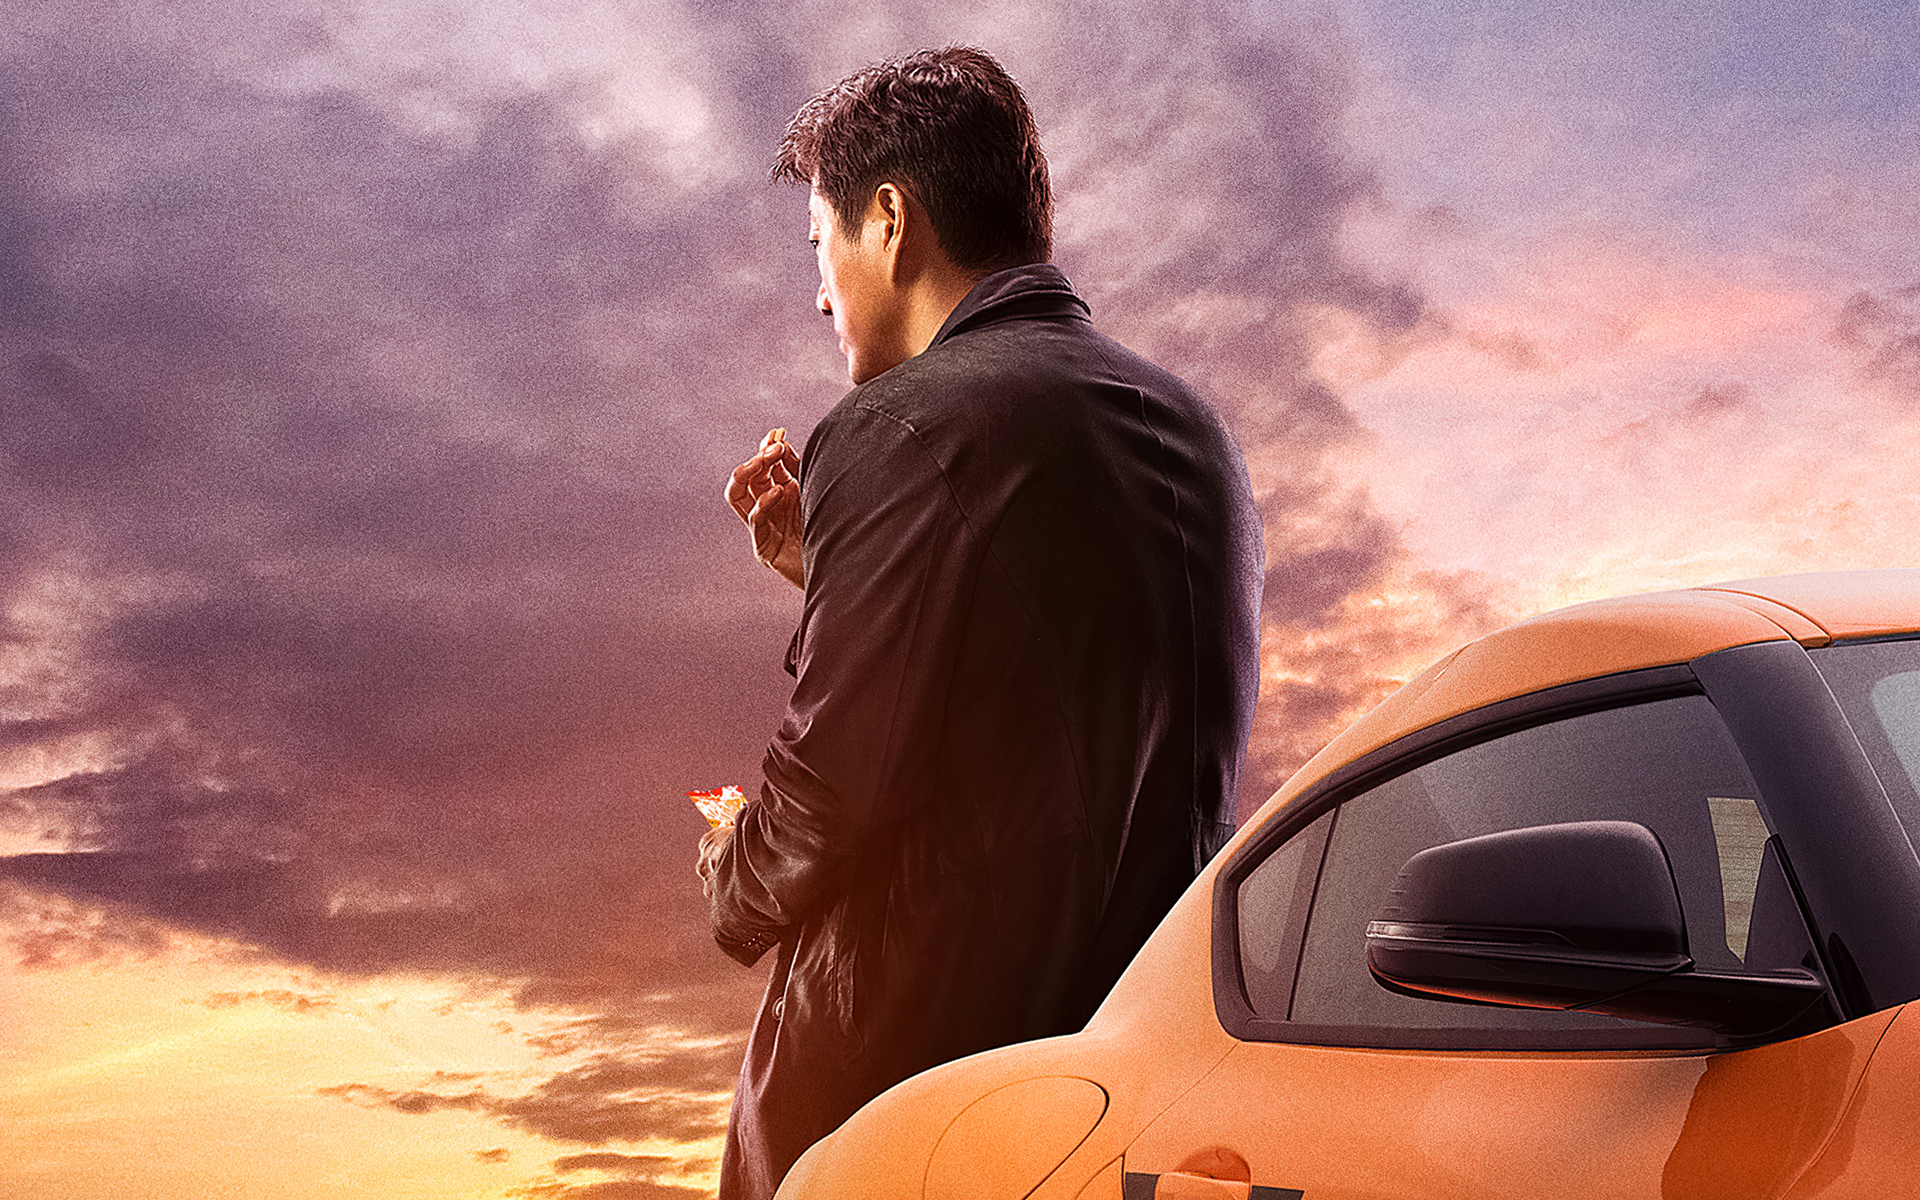 han-in-fast-and-furious-9-2020-movie-pt.jpg